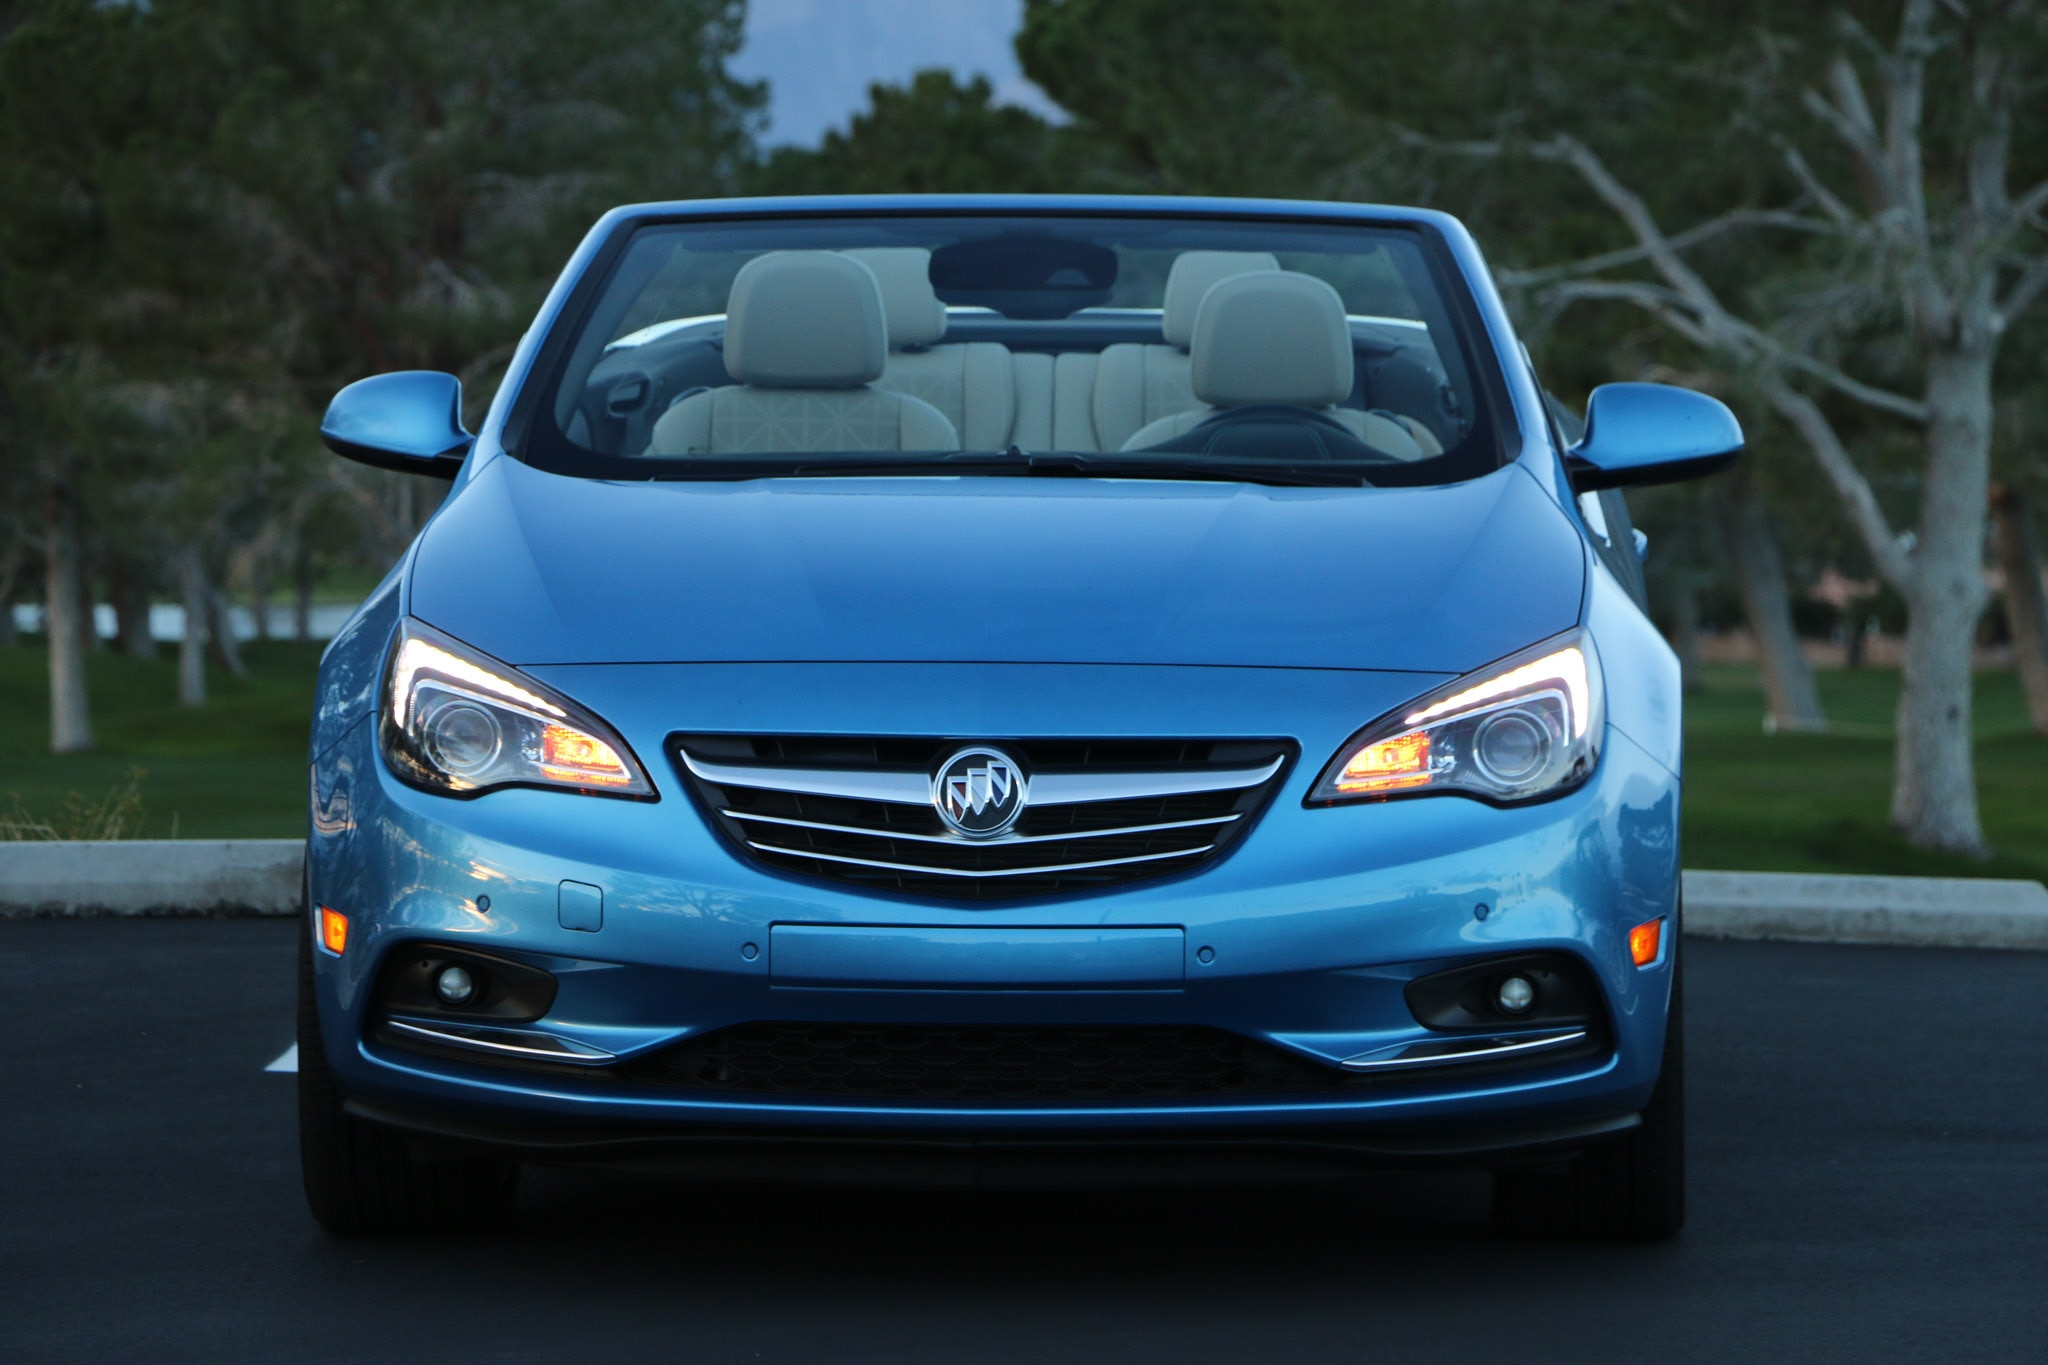 2017 Buick Cascada Sport Touring Grille